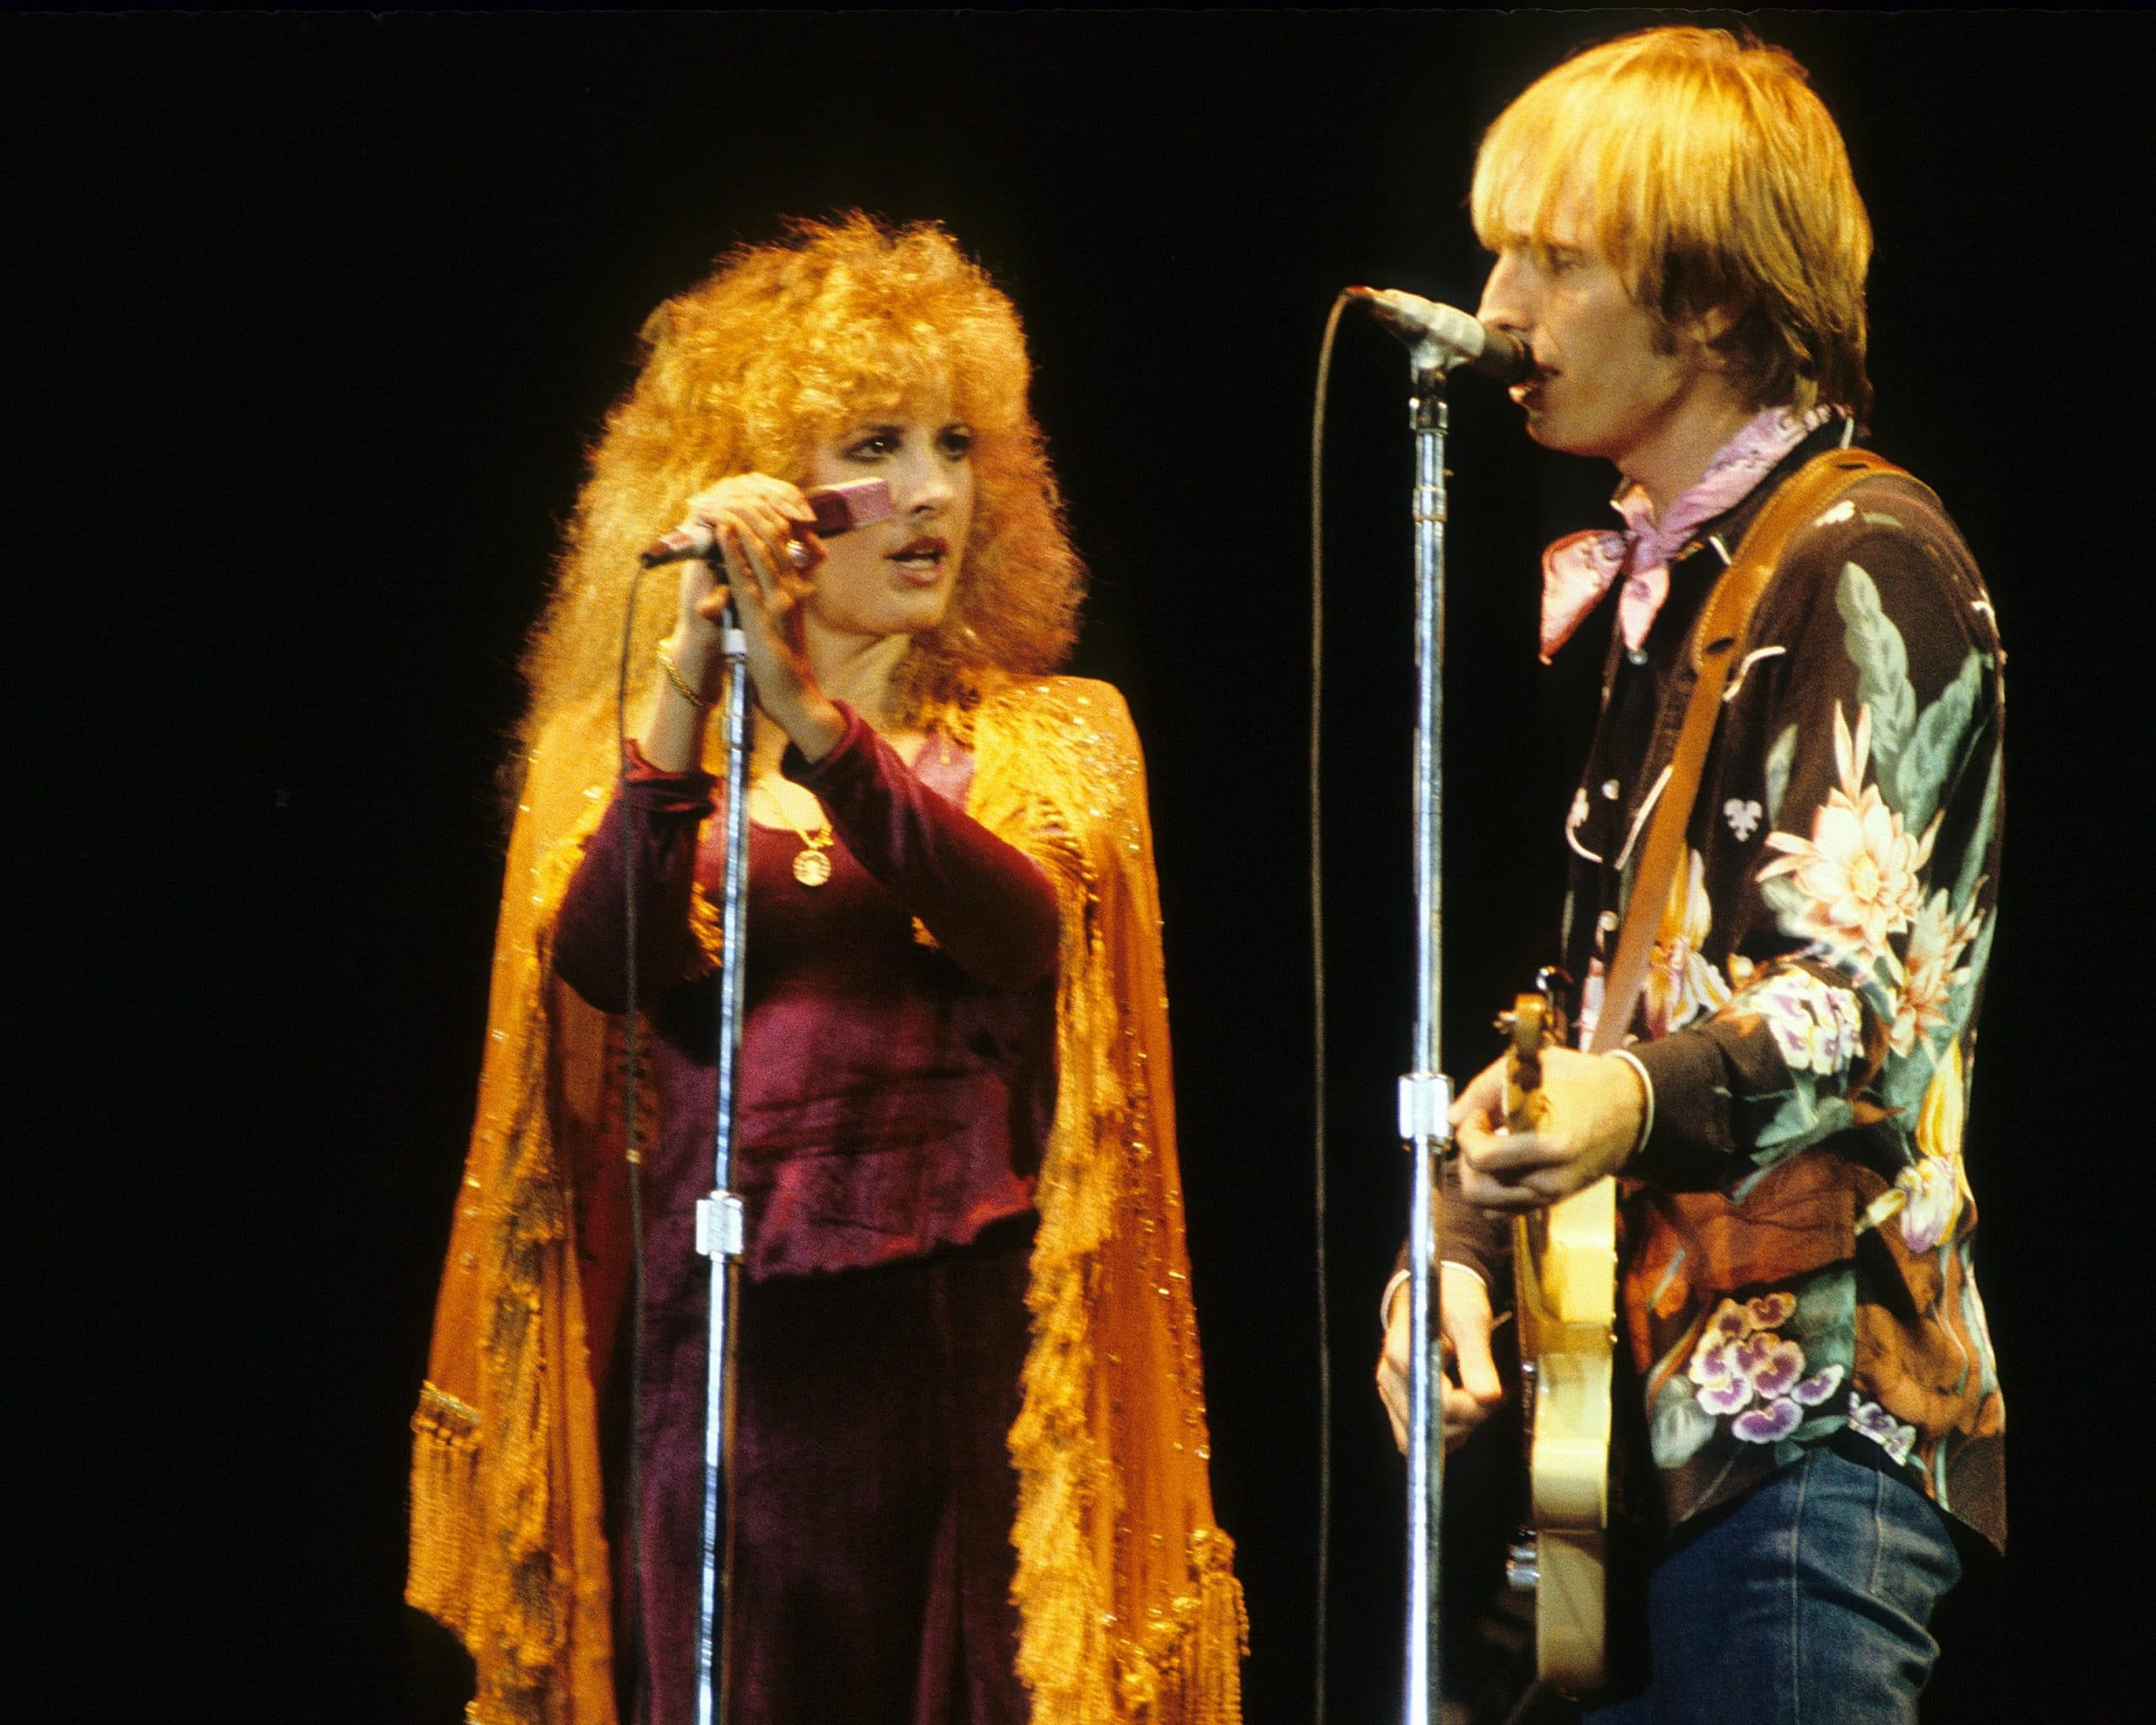 stevie nicks tom petty performing in the 1980s